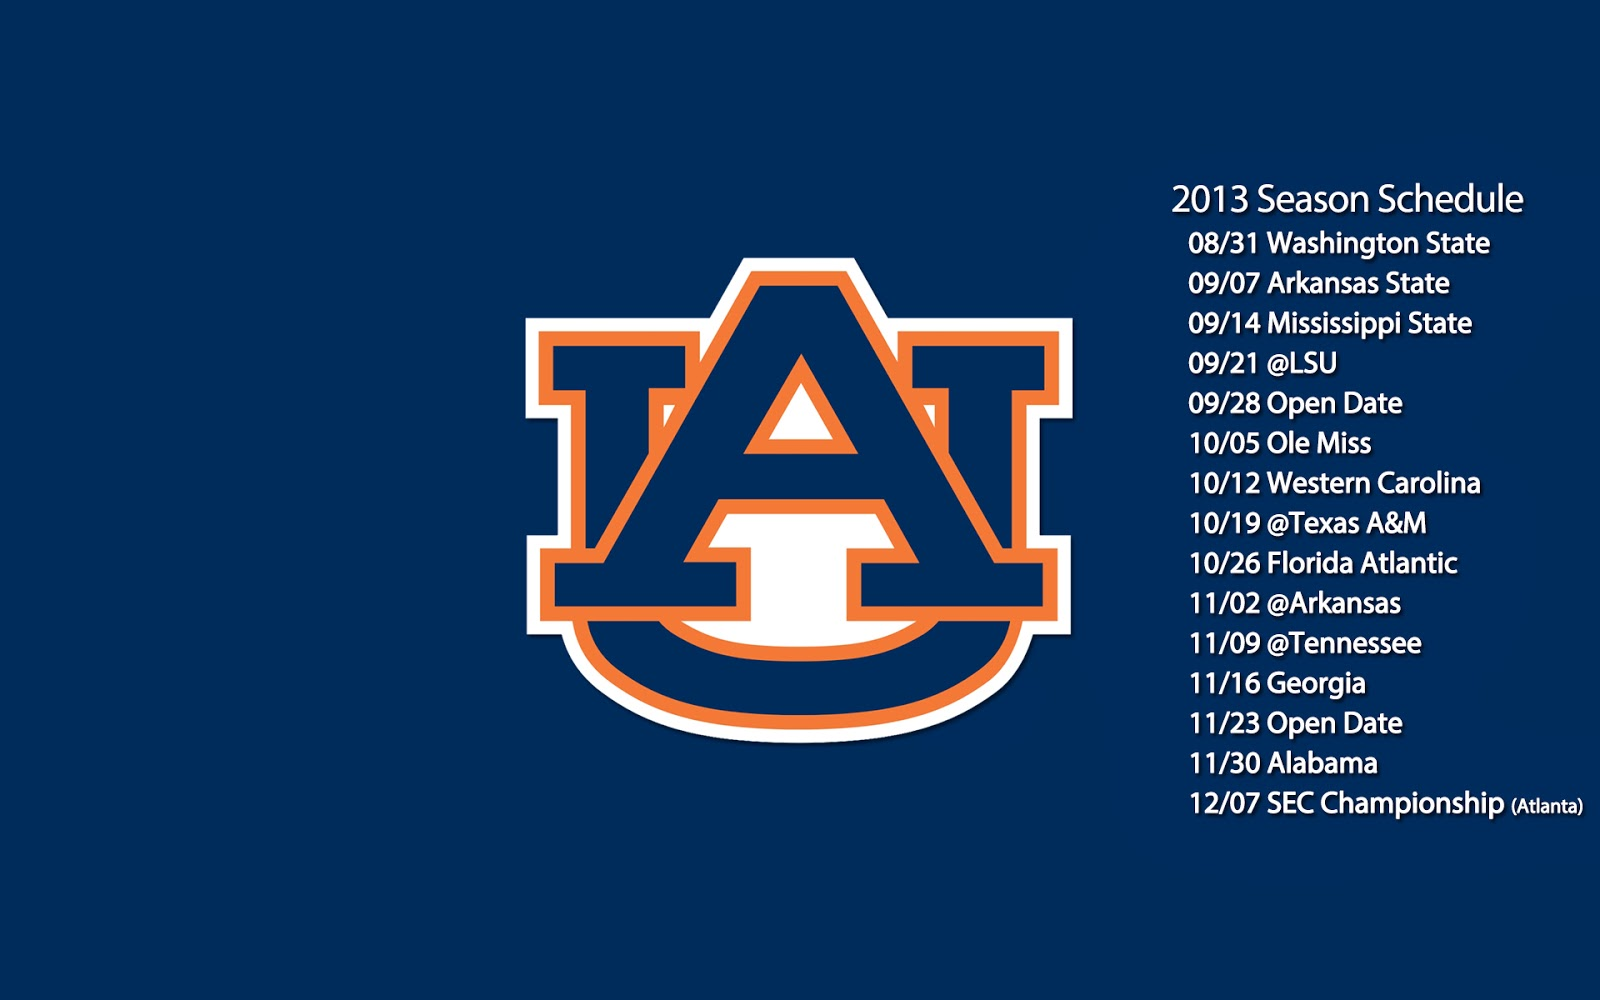 Auburn football wallpaper beautiful desktop wallpapers 2014 auburn football wallpaper voltagebd